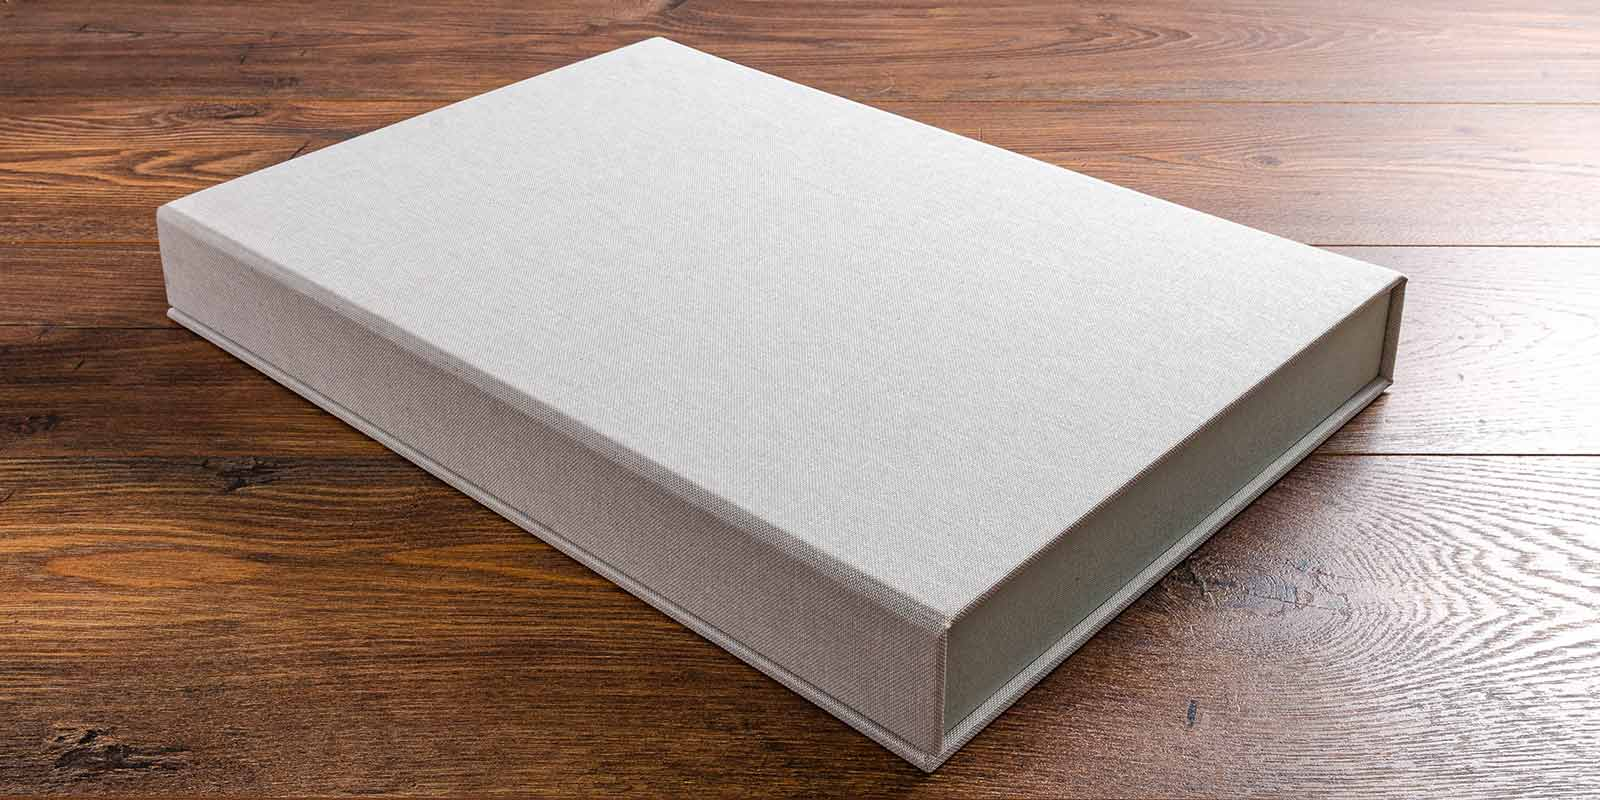 custom made clamshell portfolio box